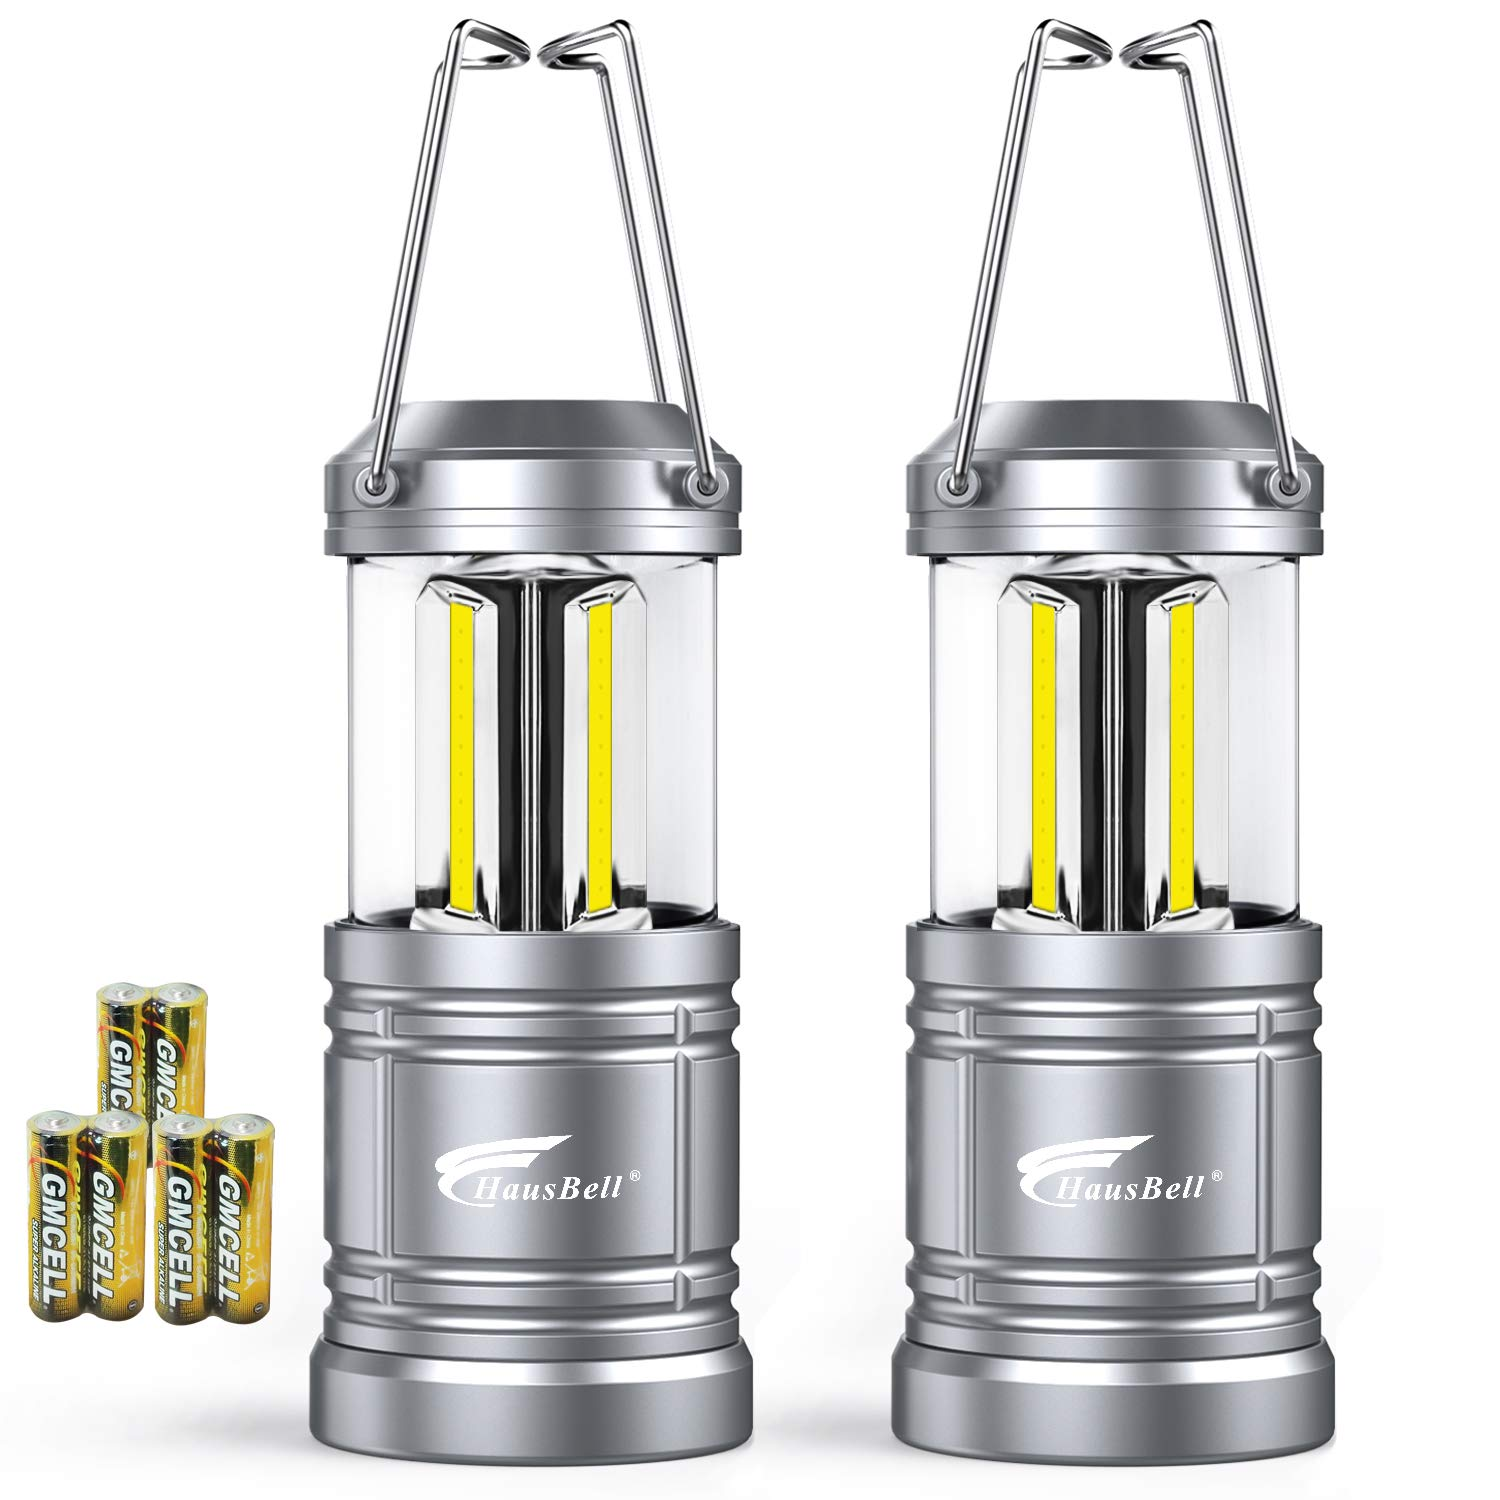 2 Pack Camping Lantern with 6 AA Batteries - Magnetic Base -Hausbell Portable Collapsible LED Camping Lantern Flashlights -Survival Kit for Emergency,Collapsible, Waterproof, Shockproof LED Lantern